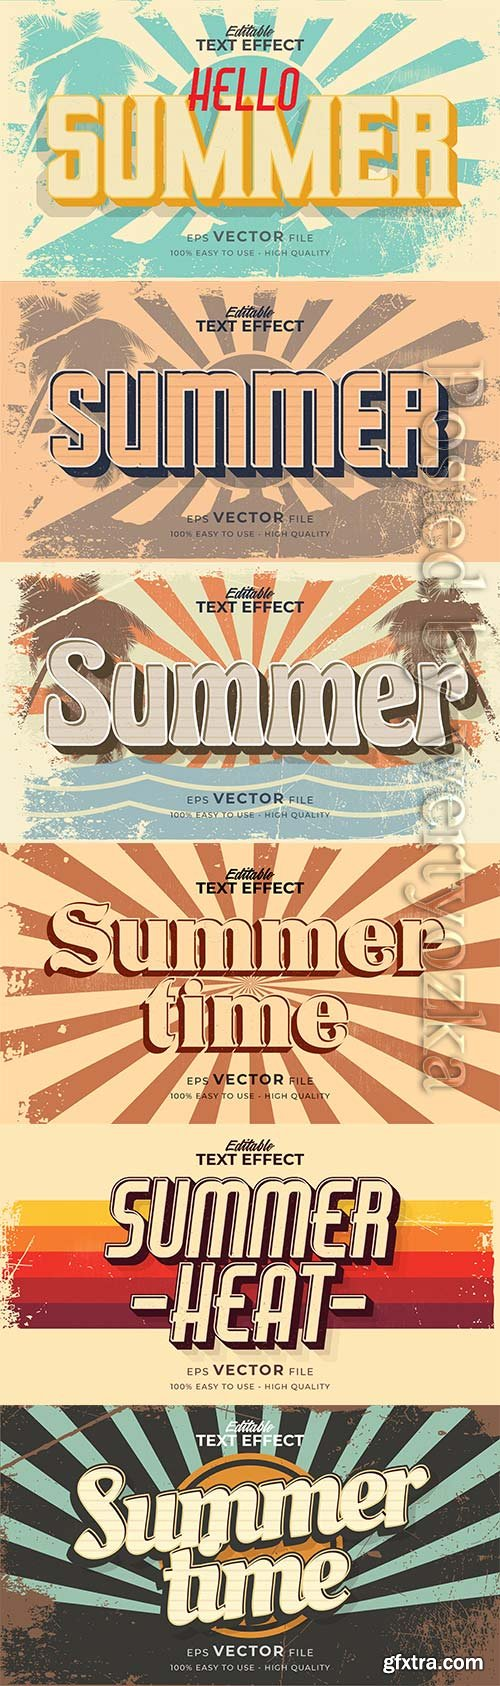 Text style effect, retro summer text in grunge style vol 2